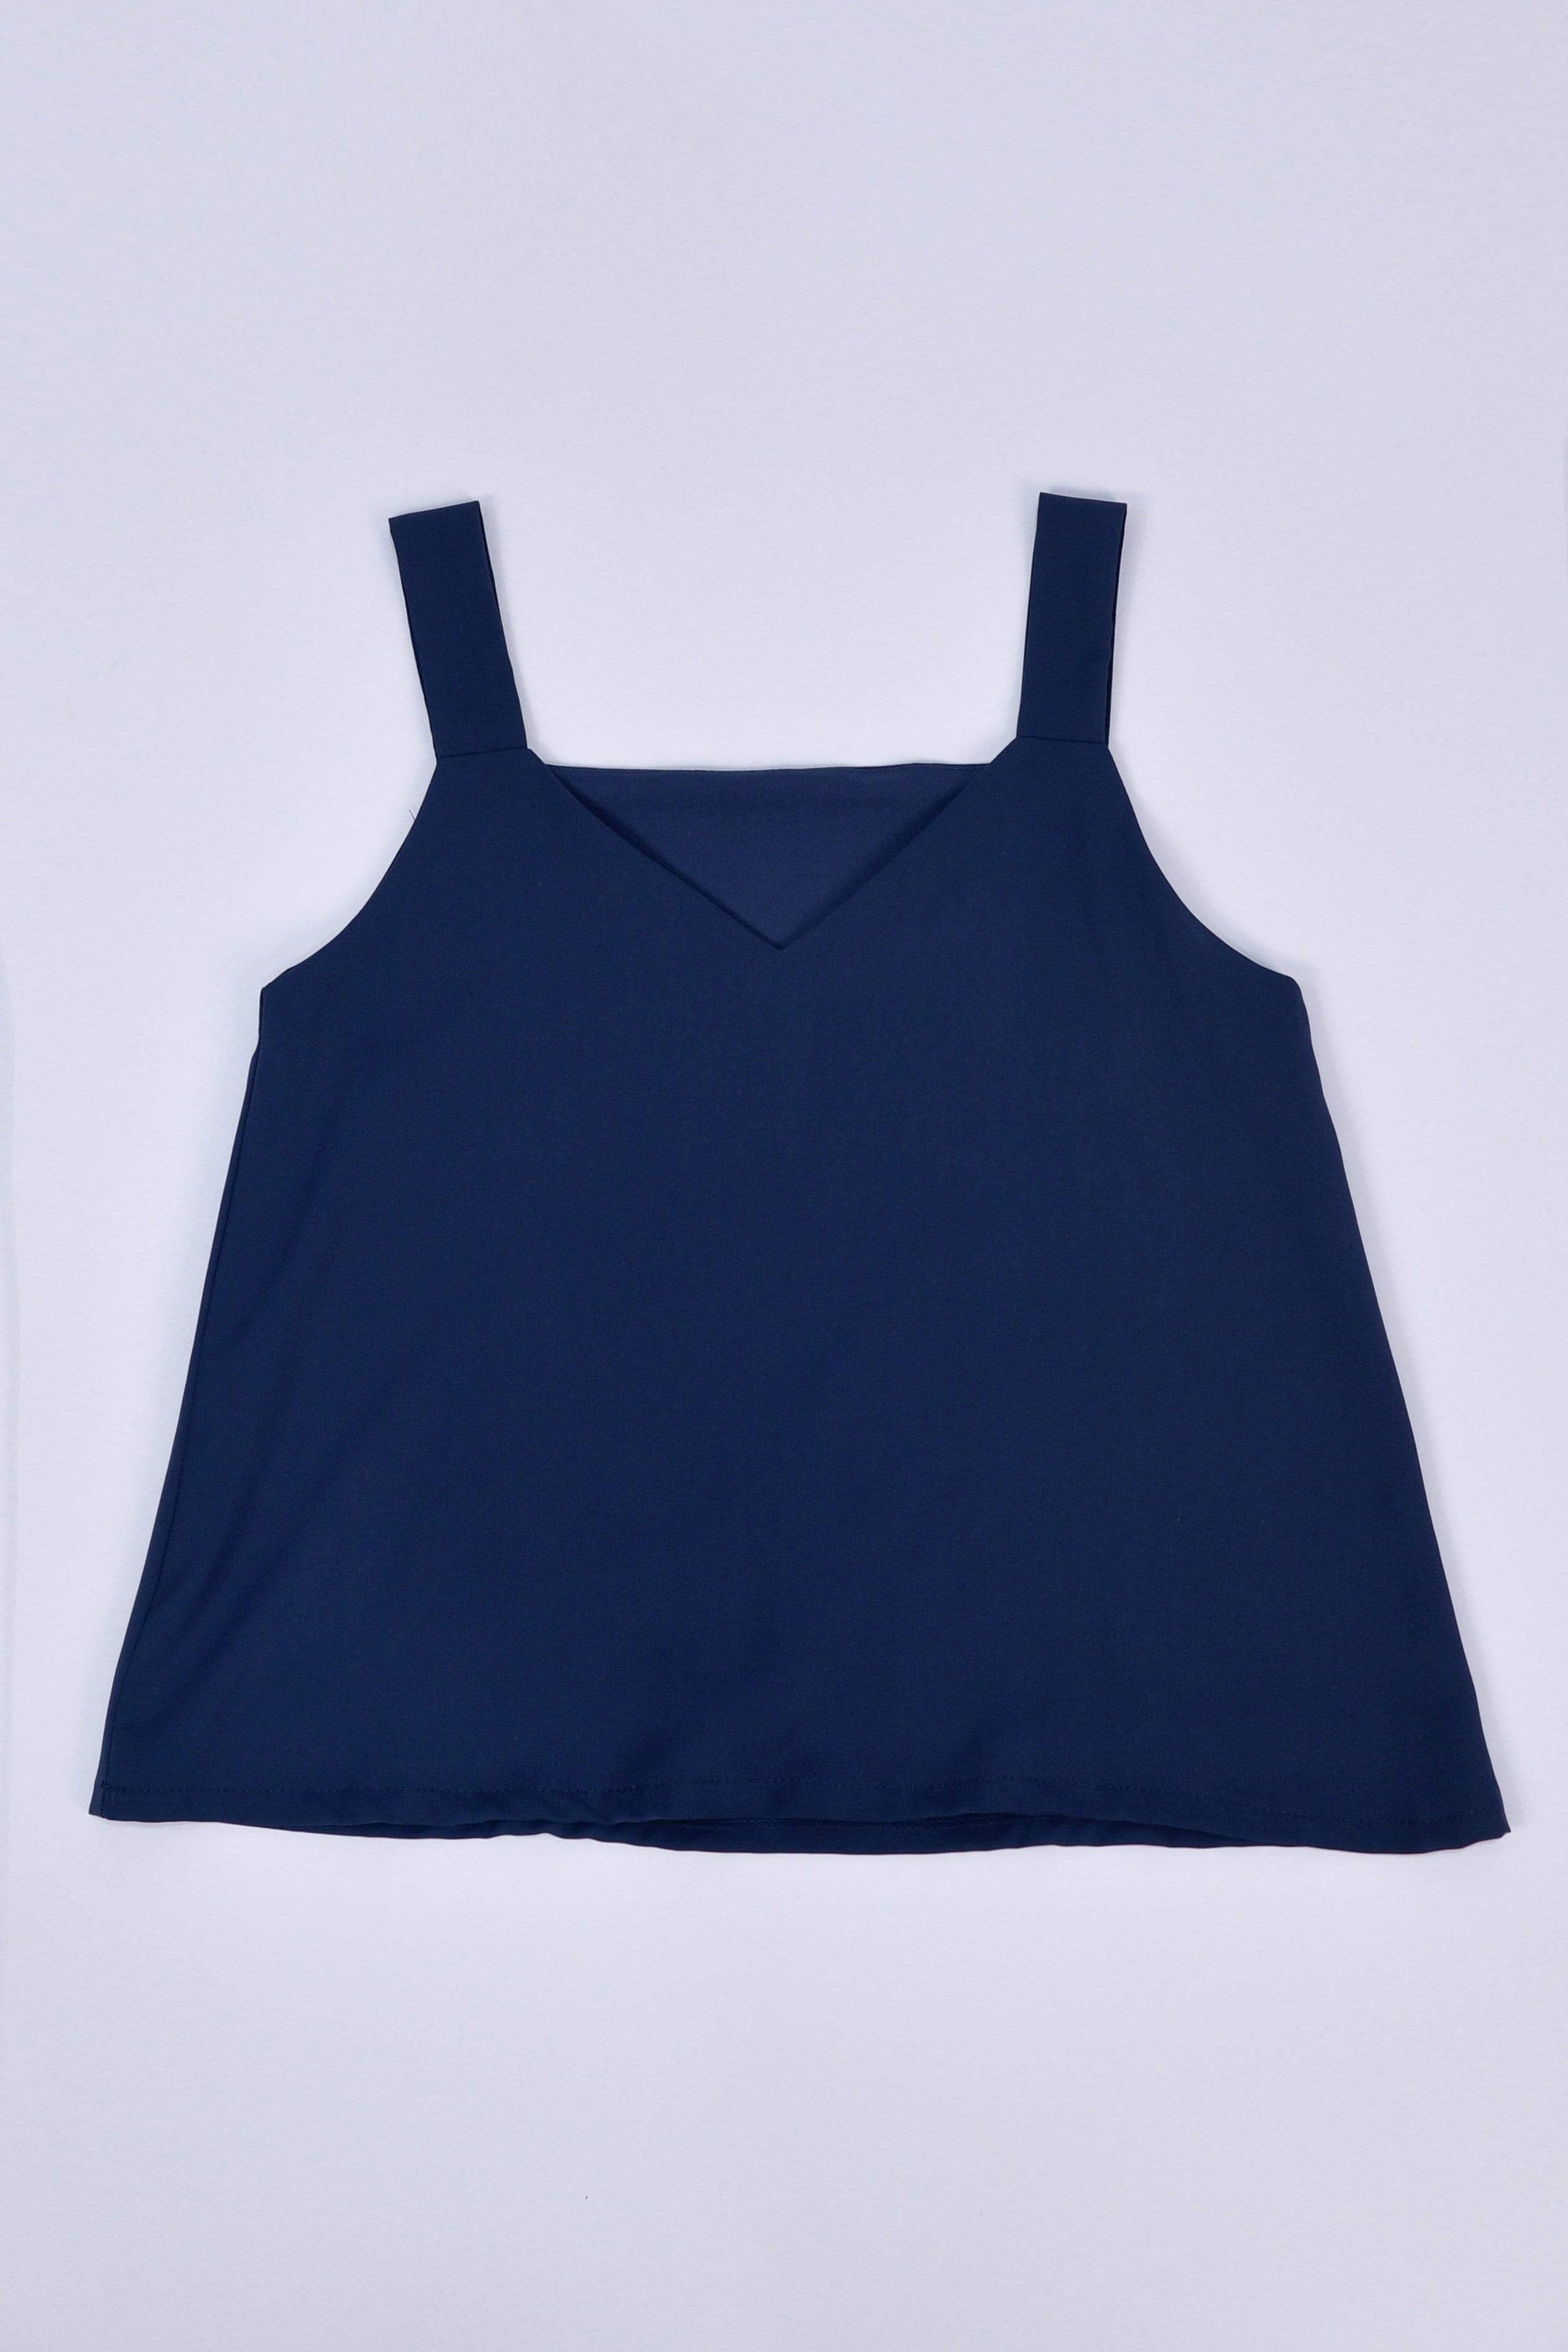 AWE Tops ALYA TWO-WAY THICK STRAP TOP IN NAVY